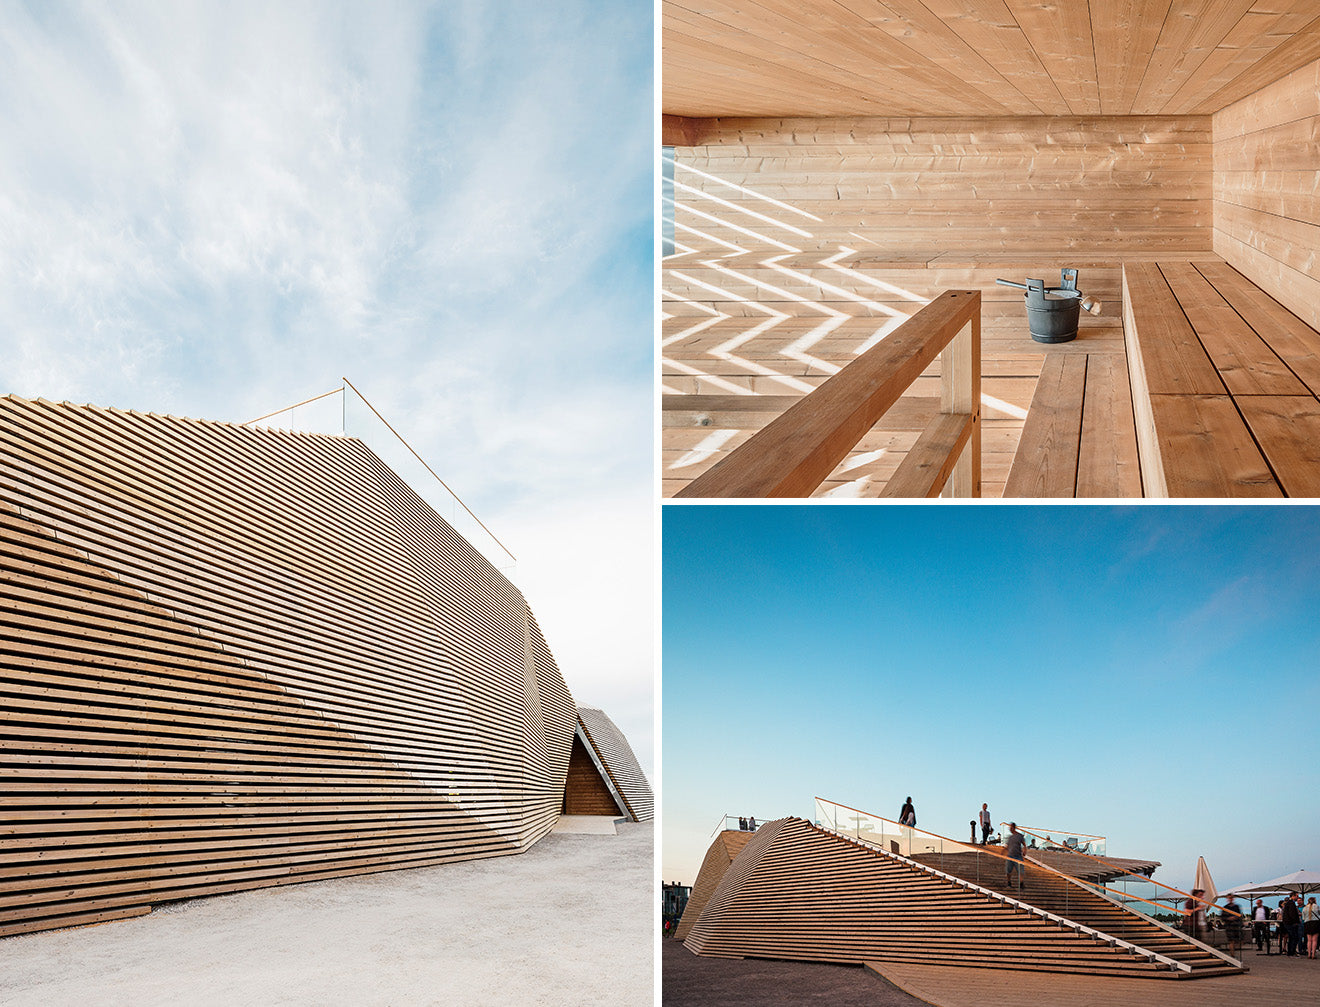 Iconic wooden architecture Sauna design from Avanto Architects